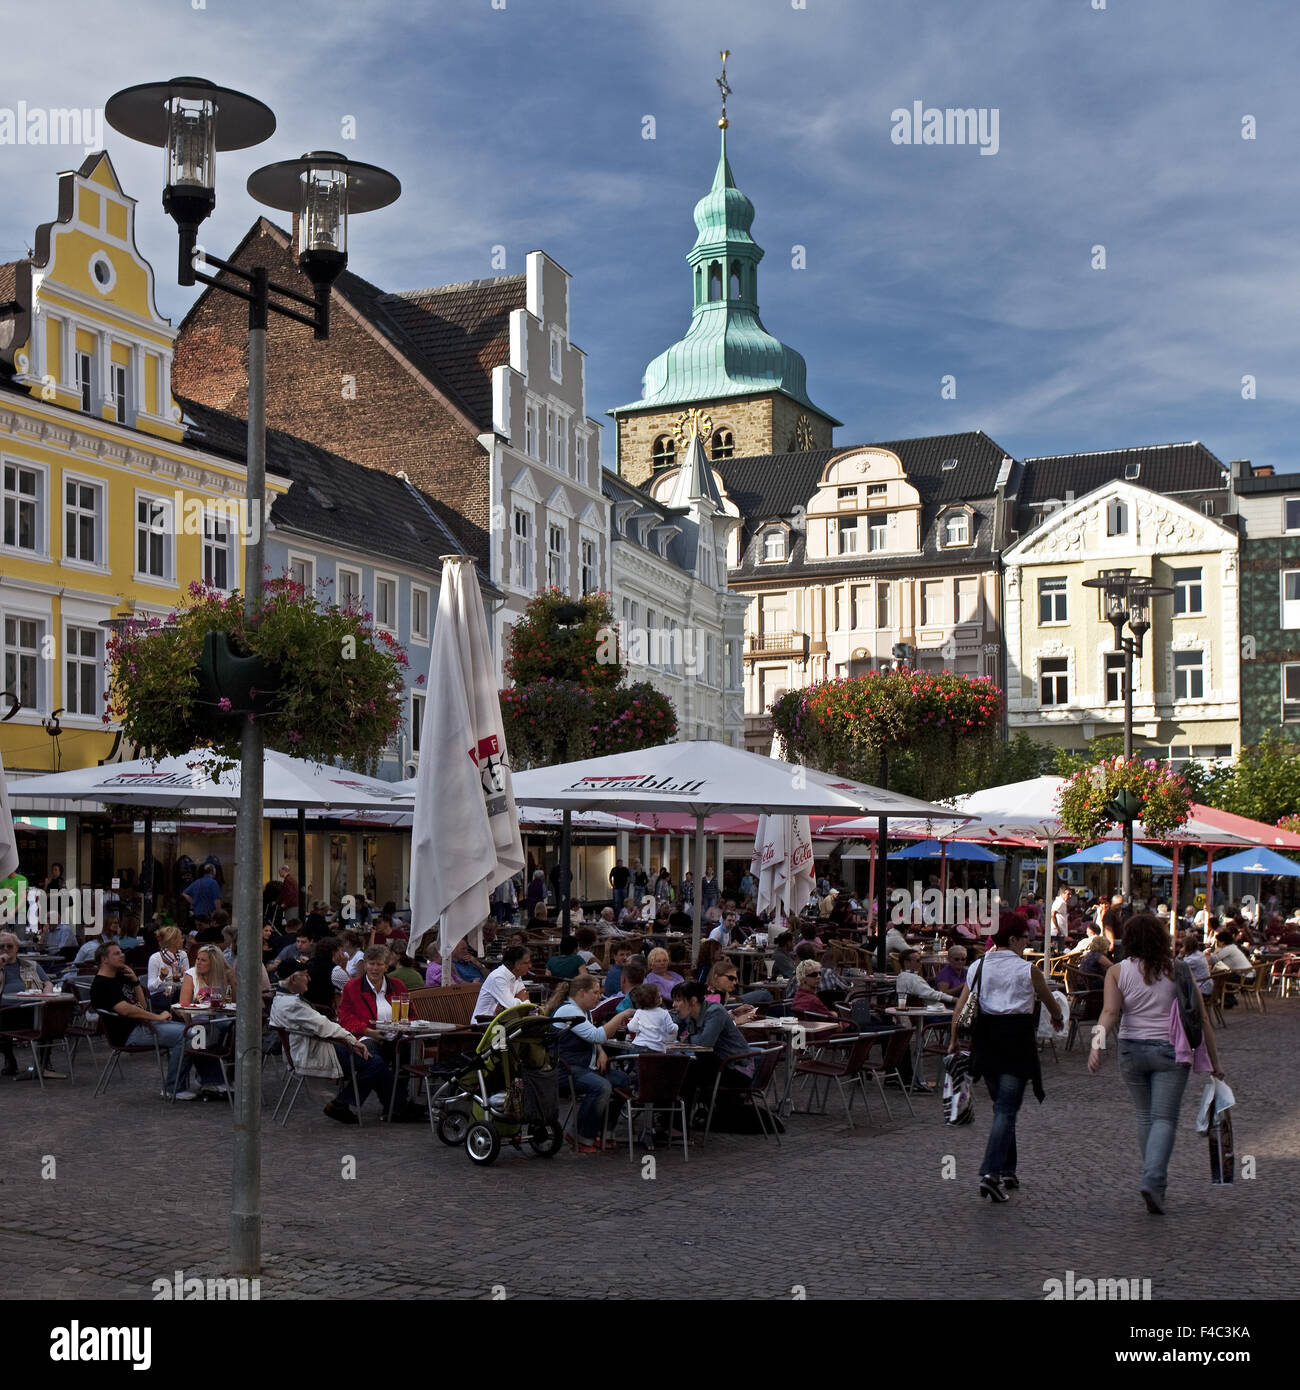 Old Town Market, Recklinghausen, Germany - Stock Image